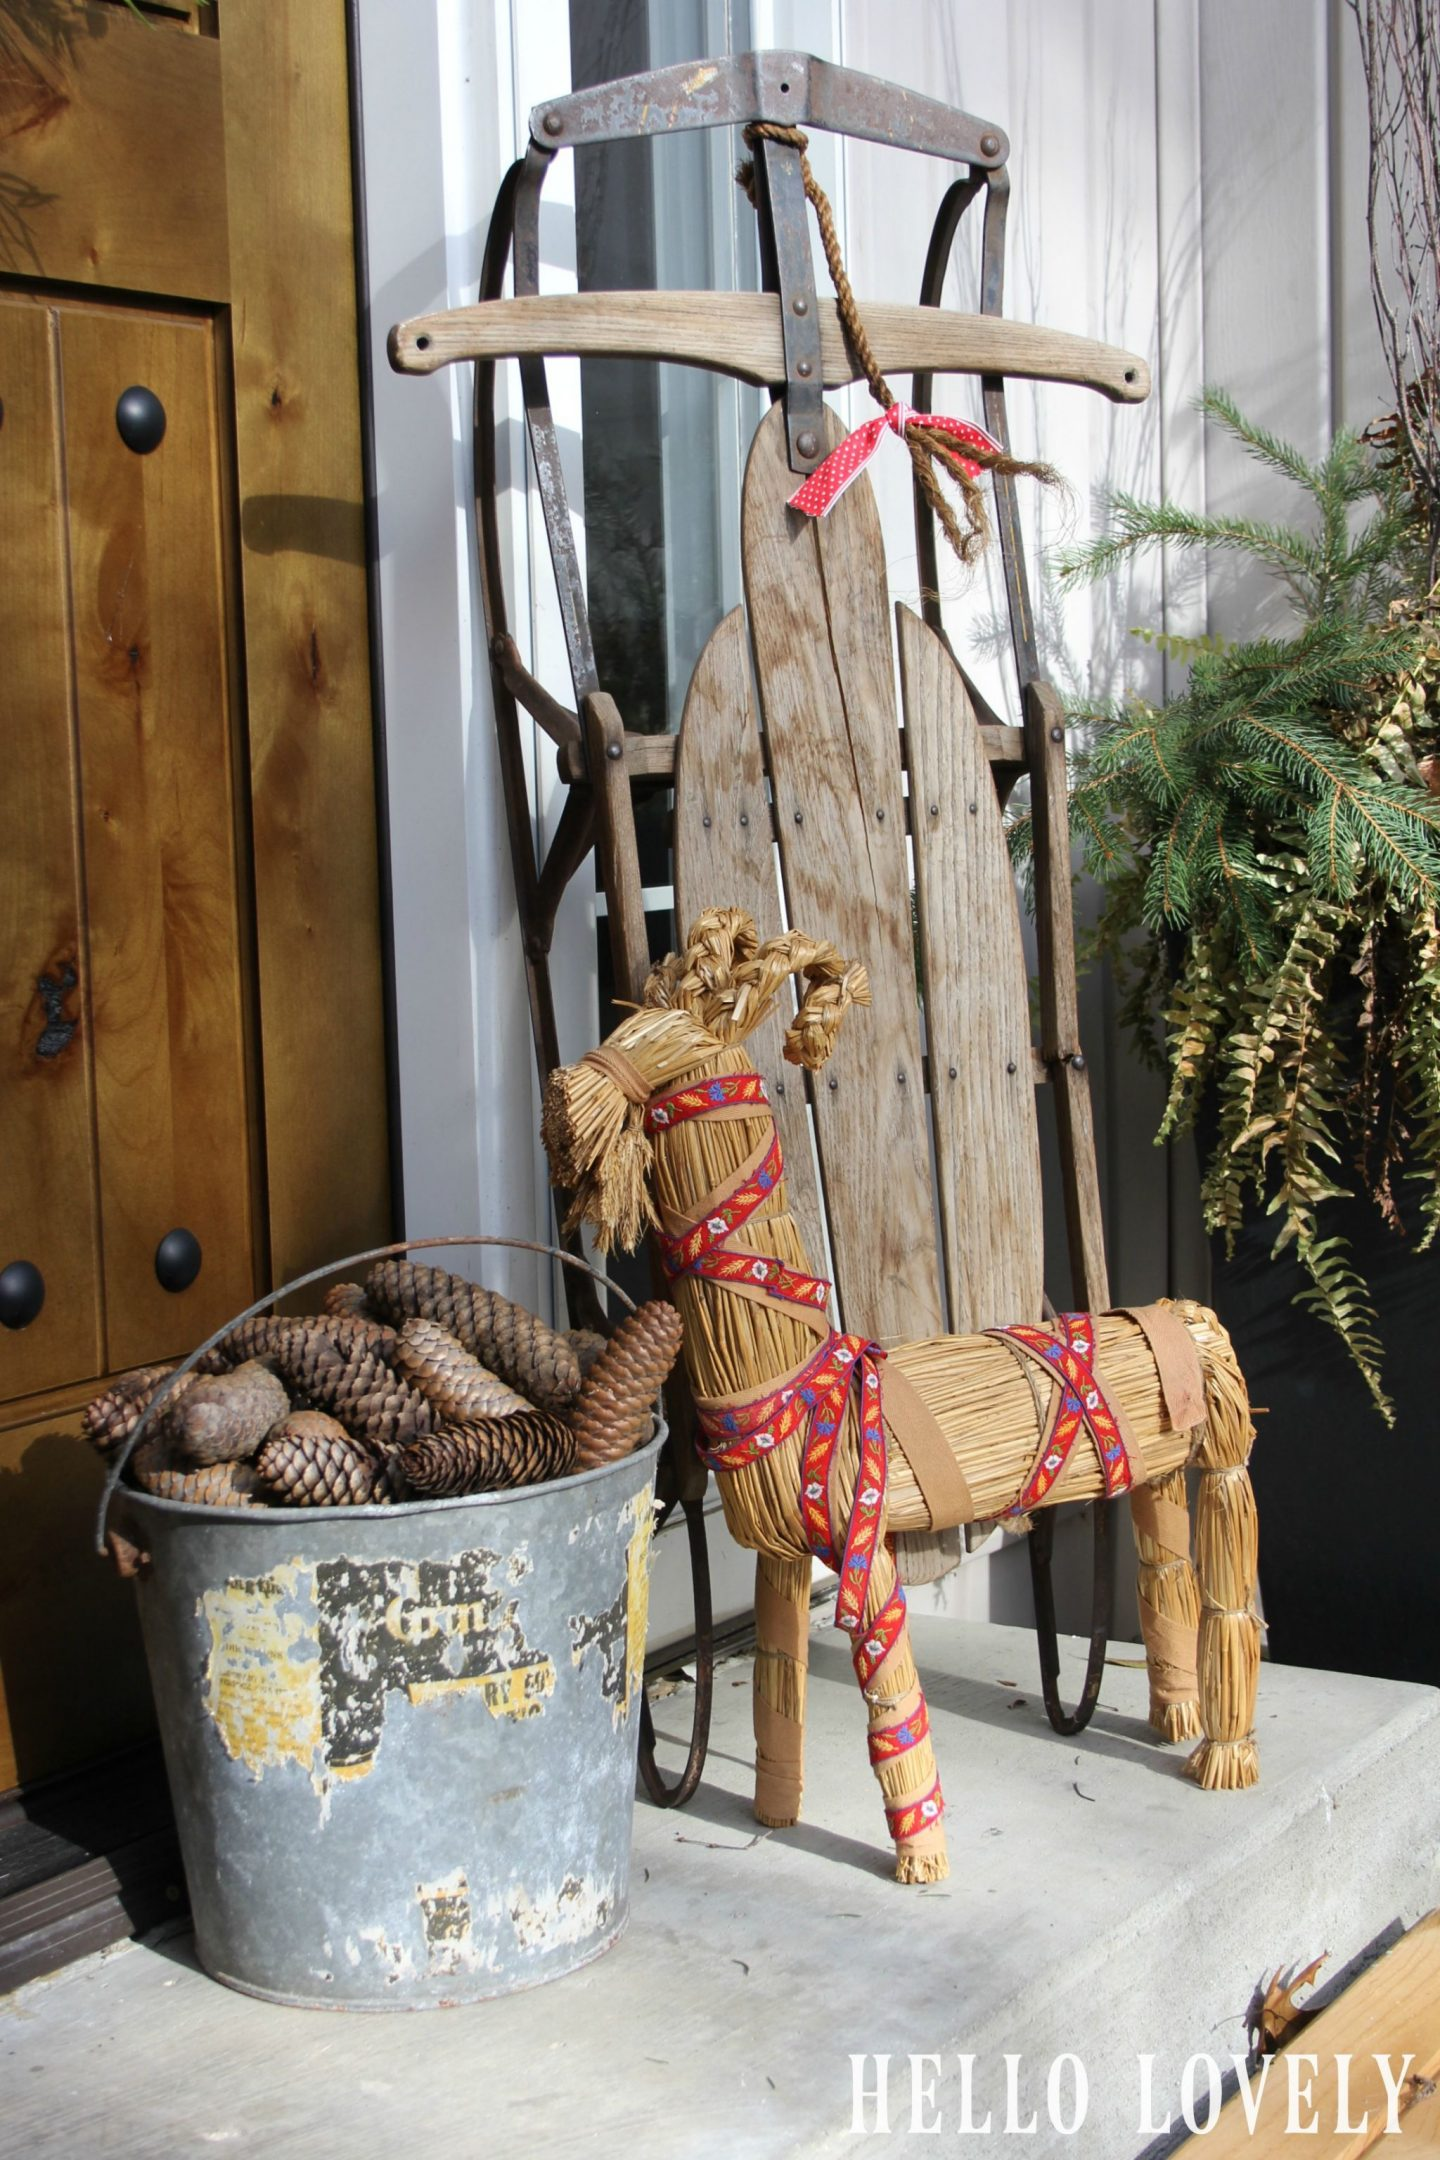 Swedish straw goat and holiday decor at my front door - Hello Lovely Studio.